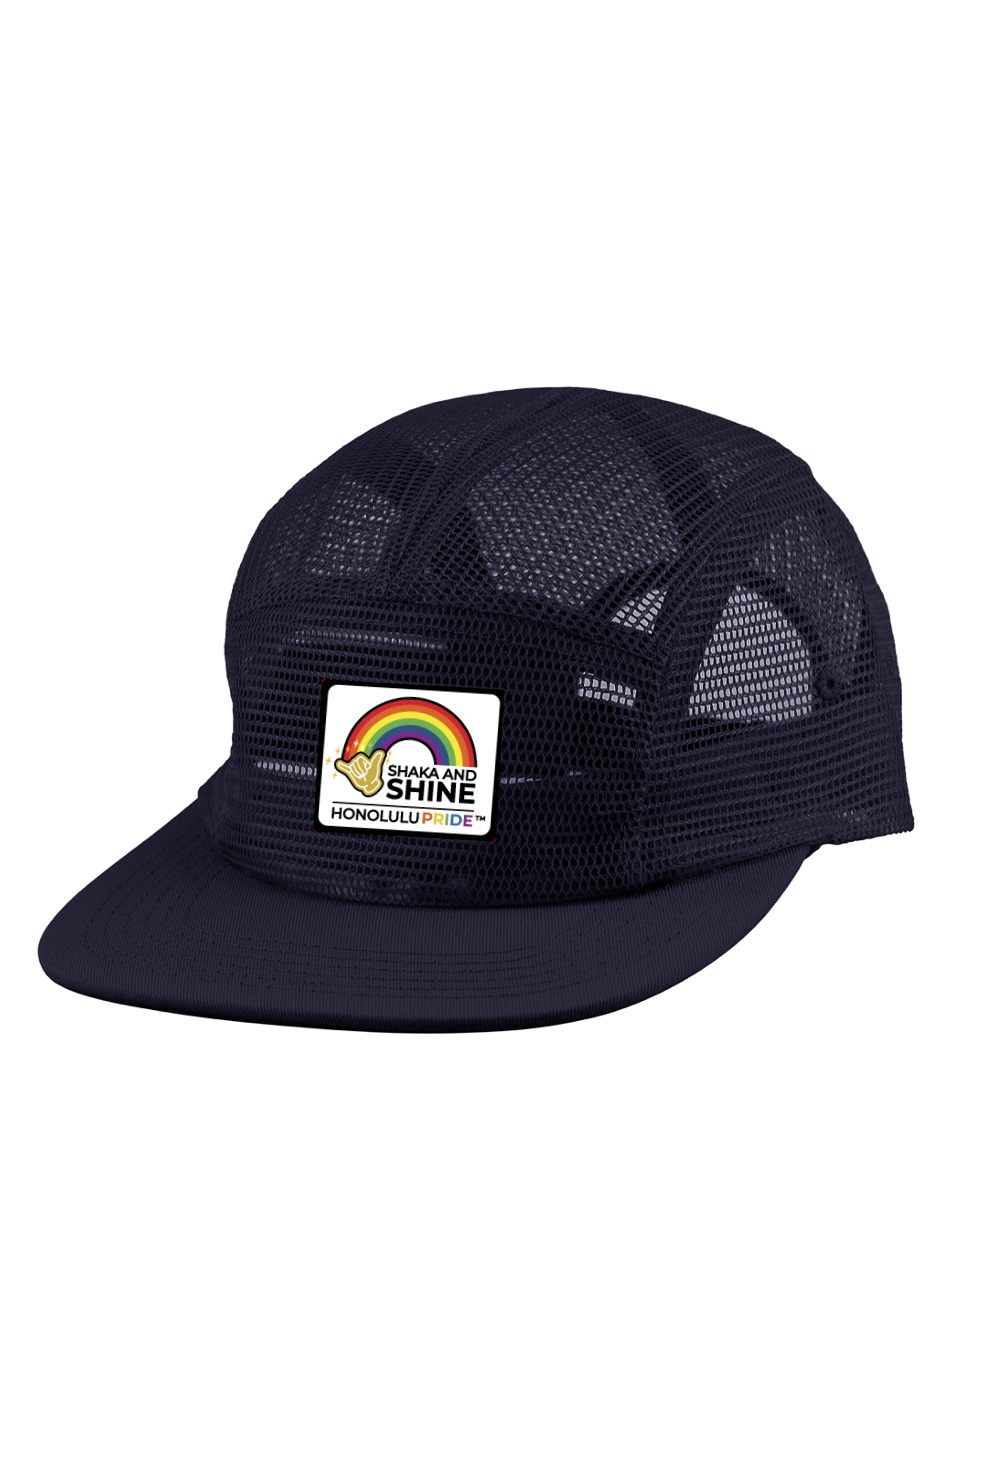 Shaka and Shine 5 Panel Mesh Camper Cap in Navy Blue